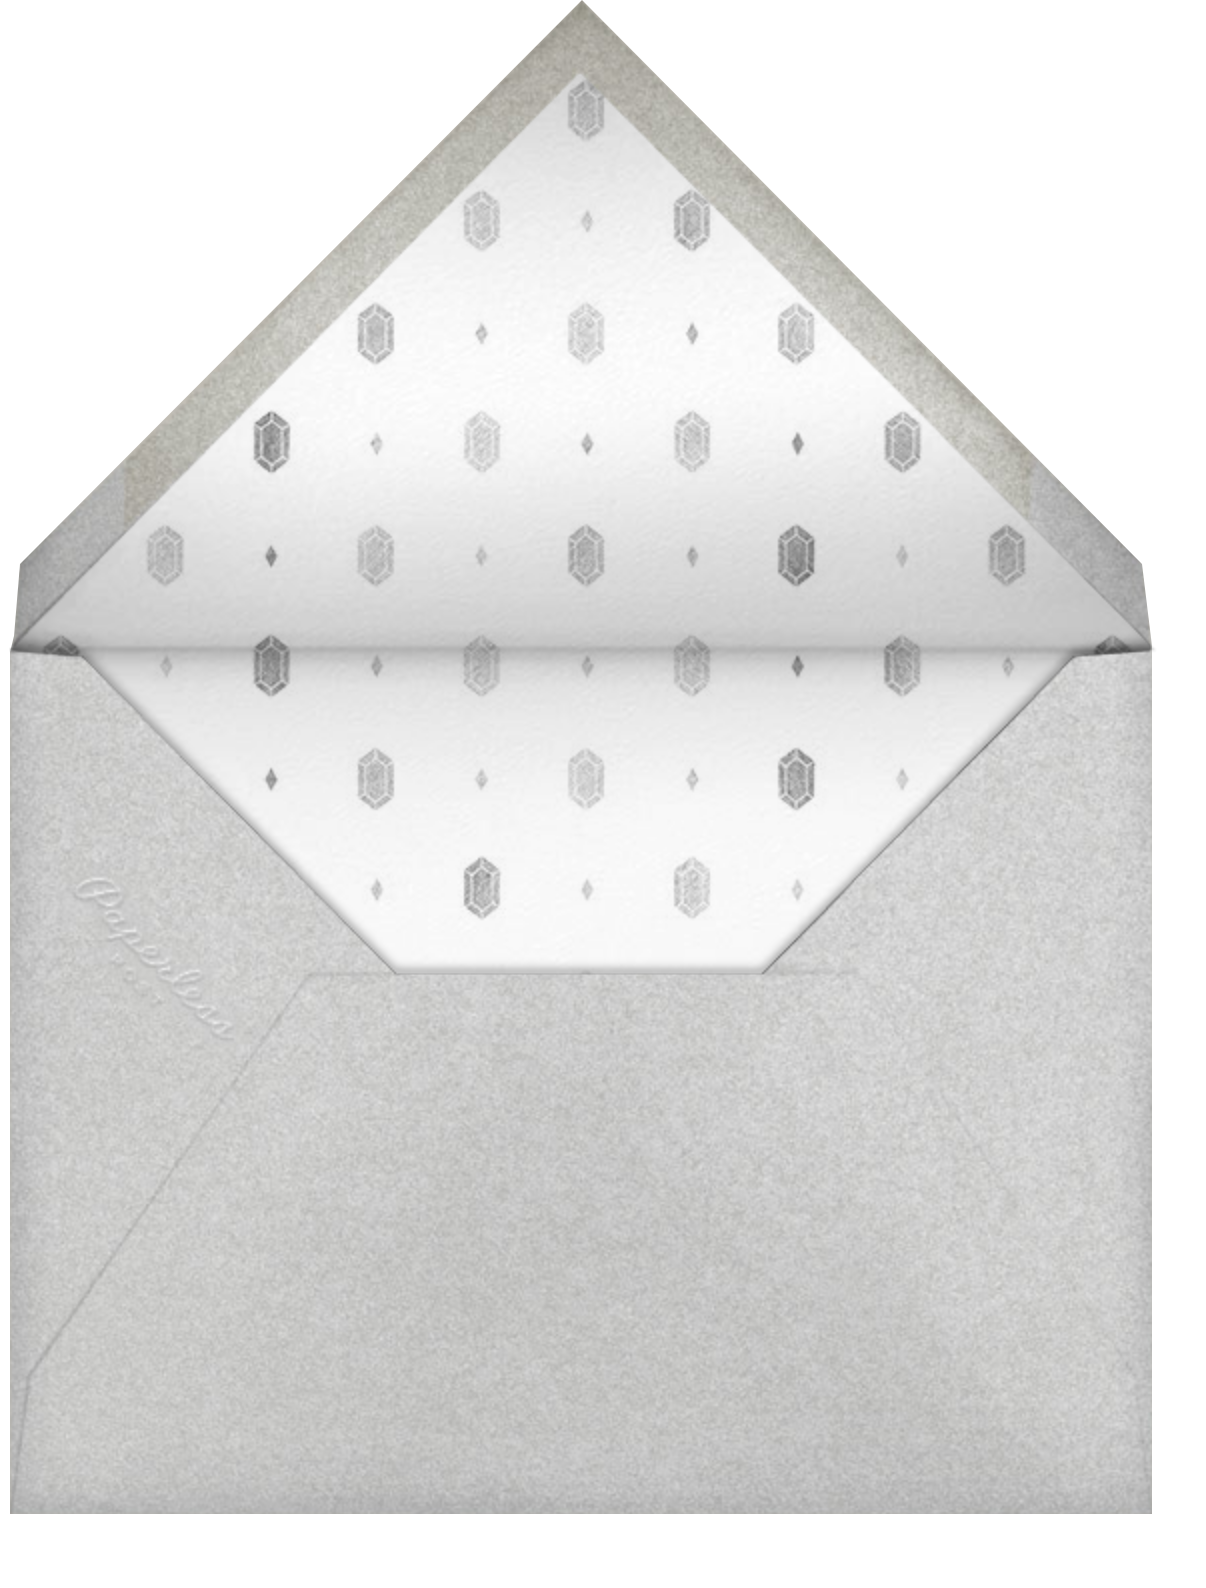 Snapshot Silver (Double Sided) - Square - Paperless Post - Adult birthday - envelope back